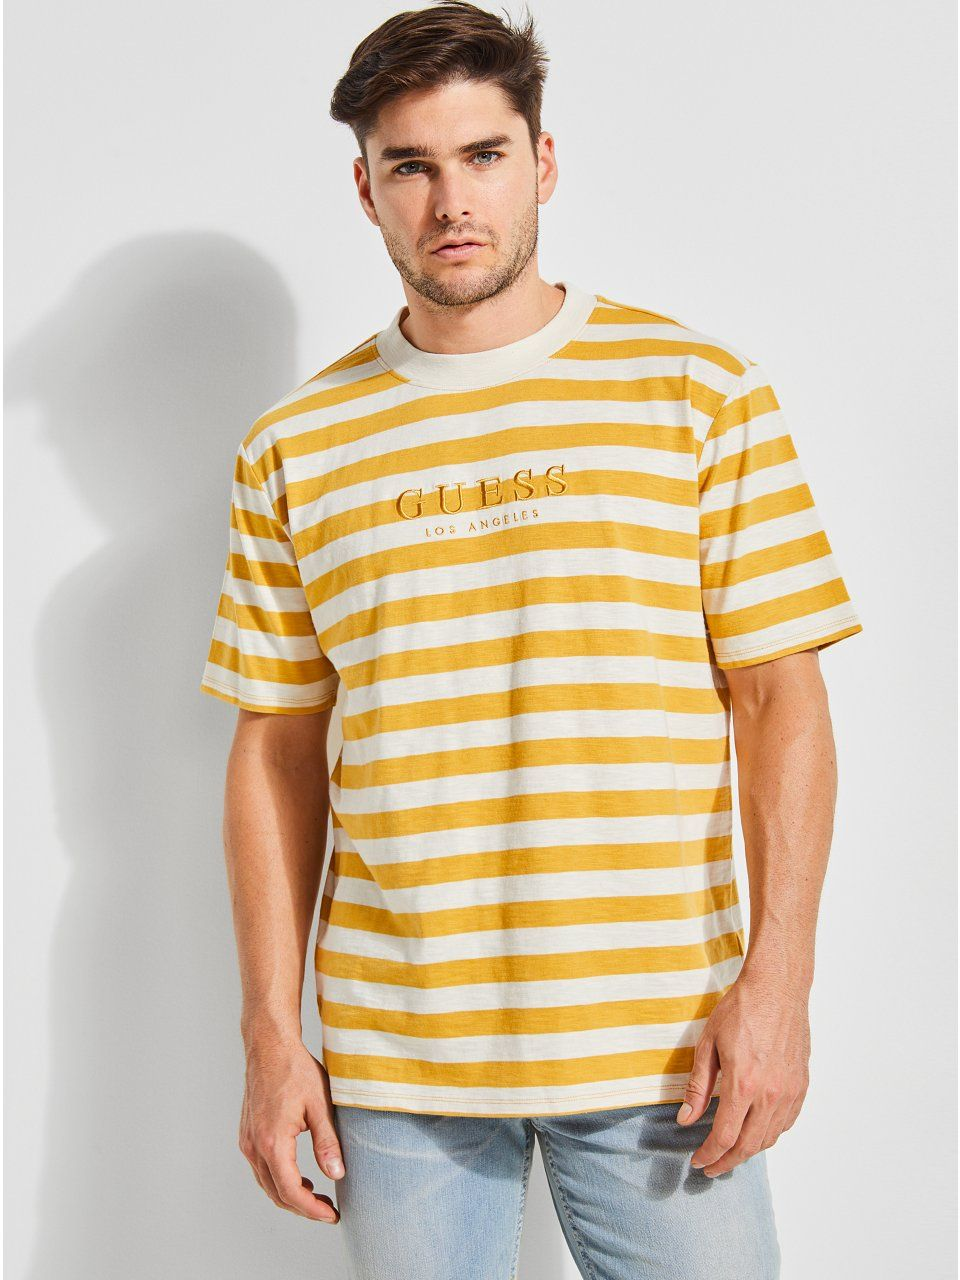 7fb57dfd77e1 GUESS Originals Striped Tee in 2019 | Products | Guess shirt ...